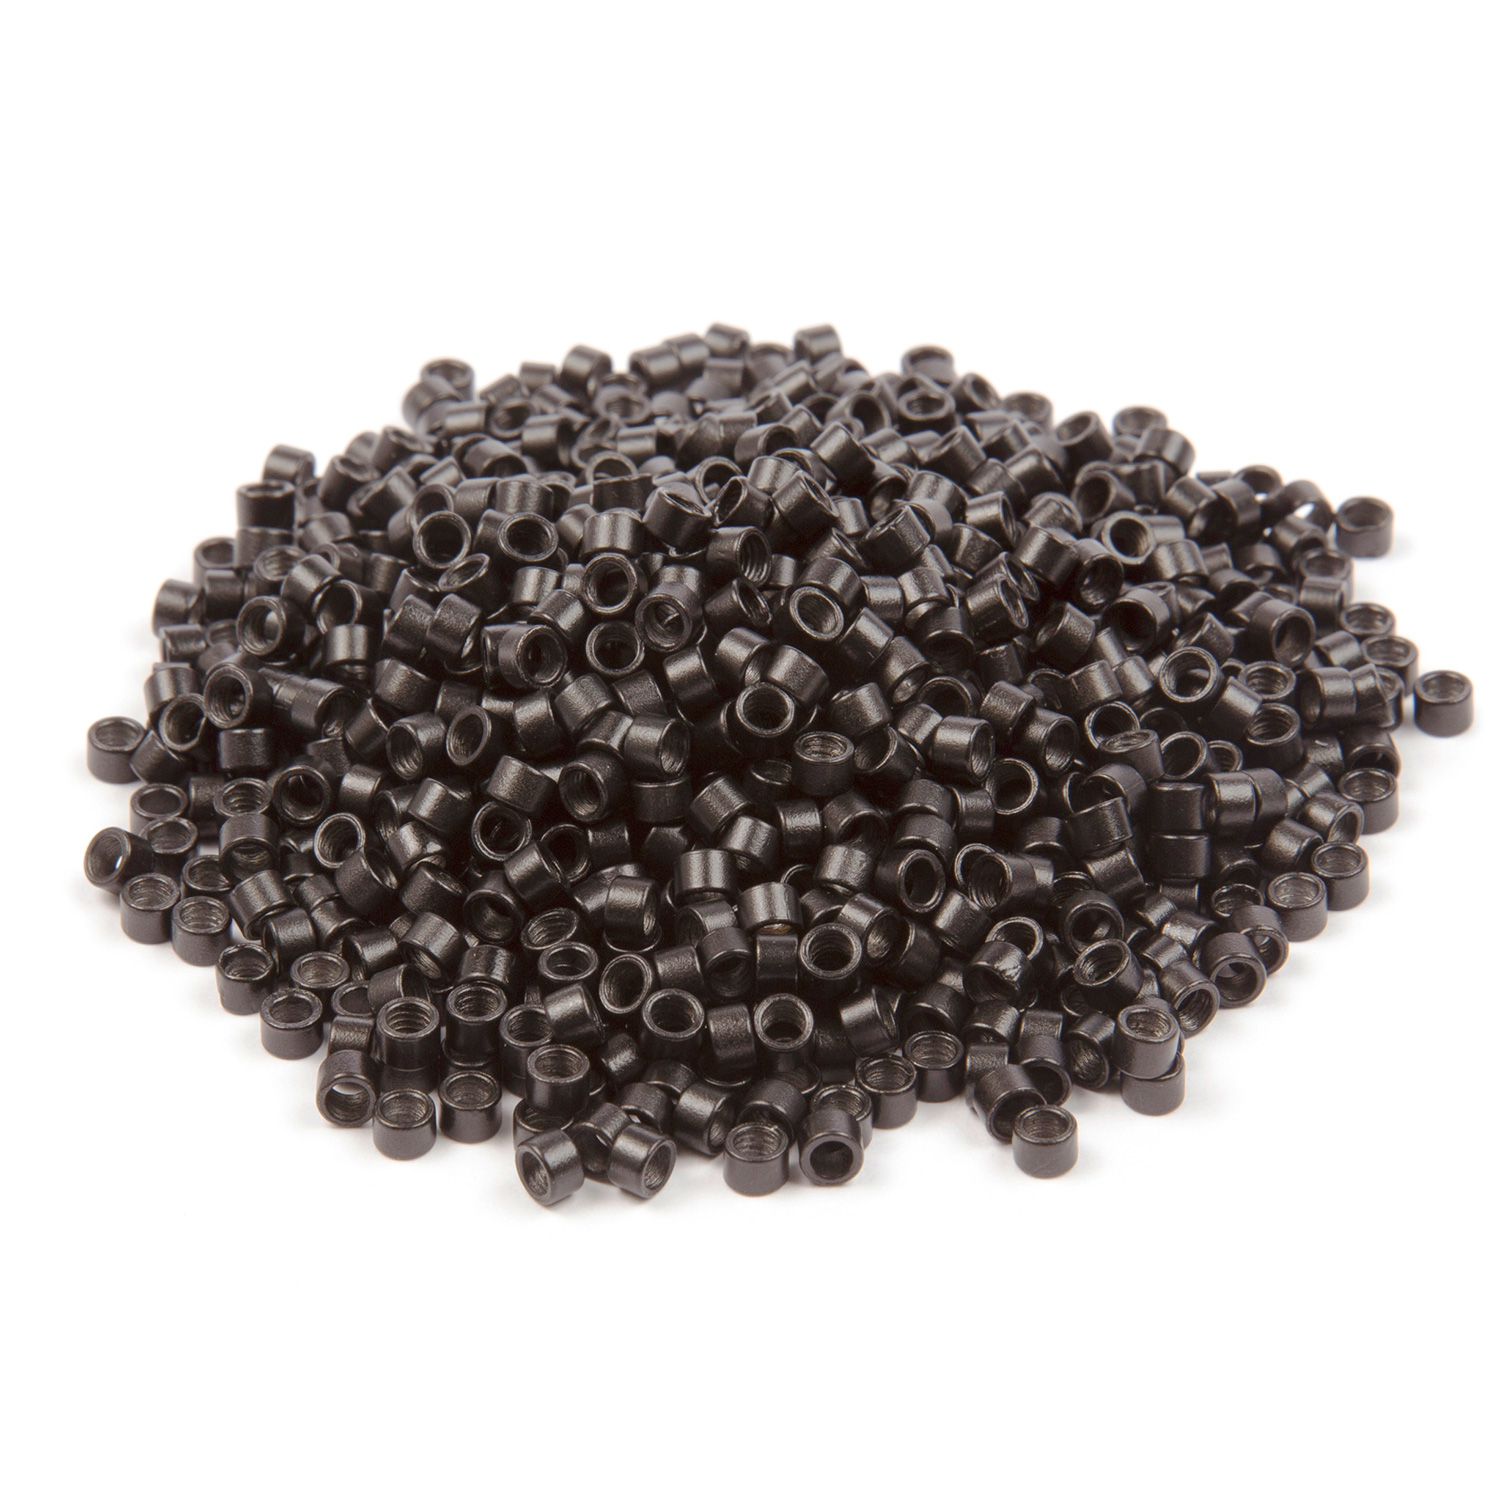 1000 ct. Med Size Black Beads